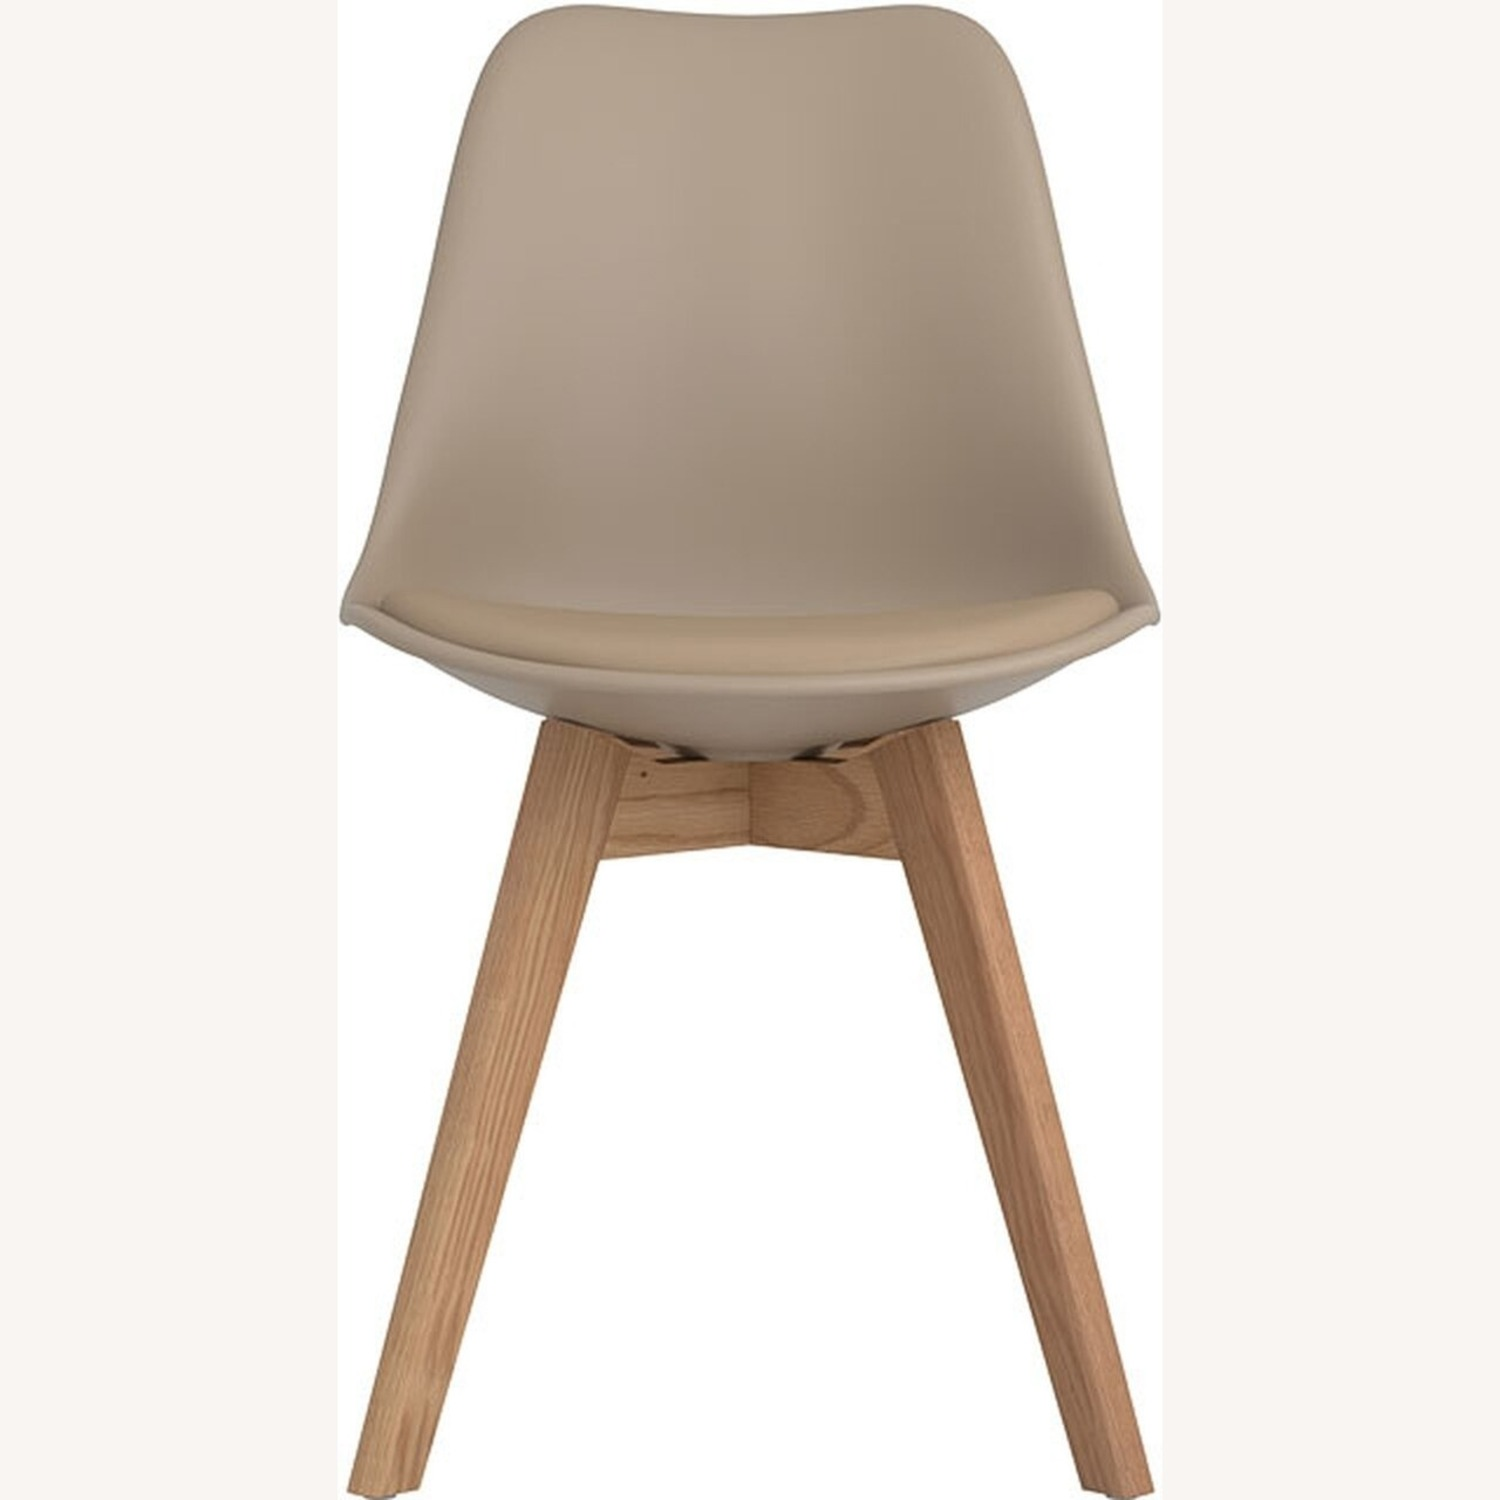 Modern Side Chair In Tan Leatherette - image-1